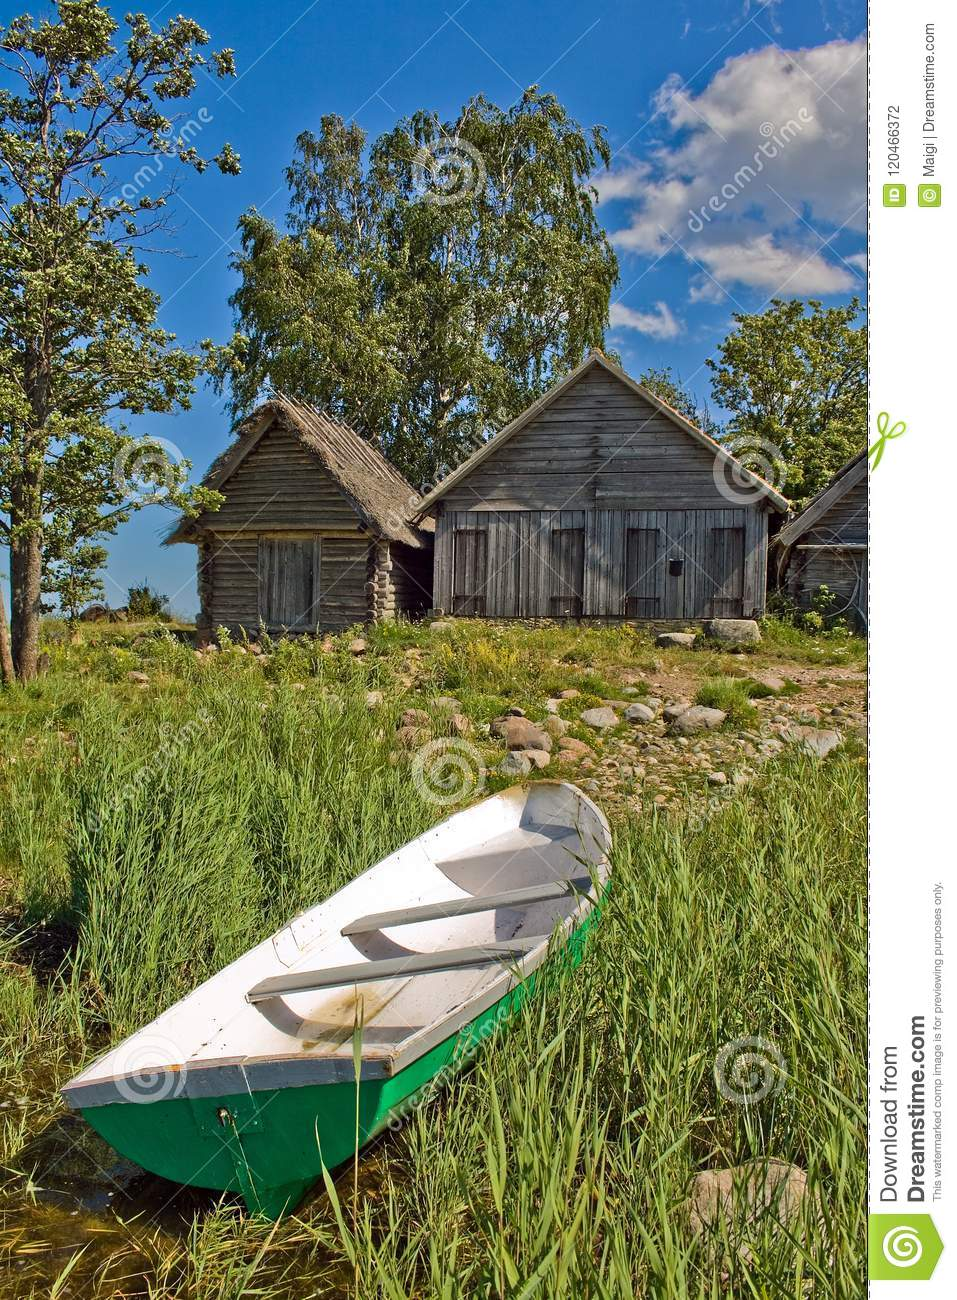 Download Net-sheds and fishing boat stock photo. Image of food - 120466372